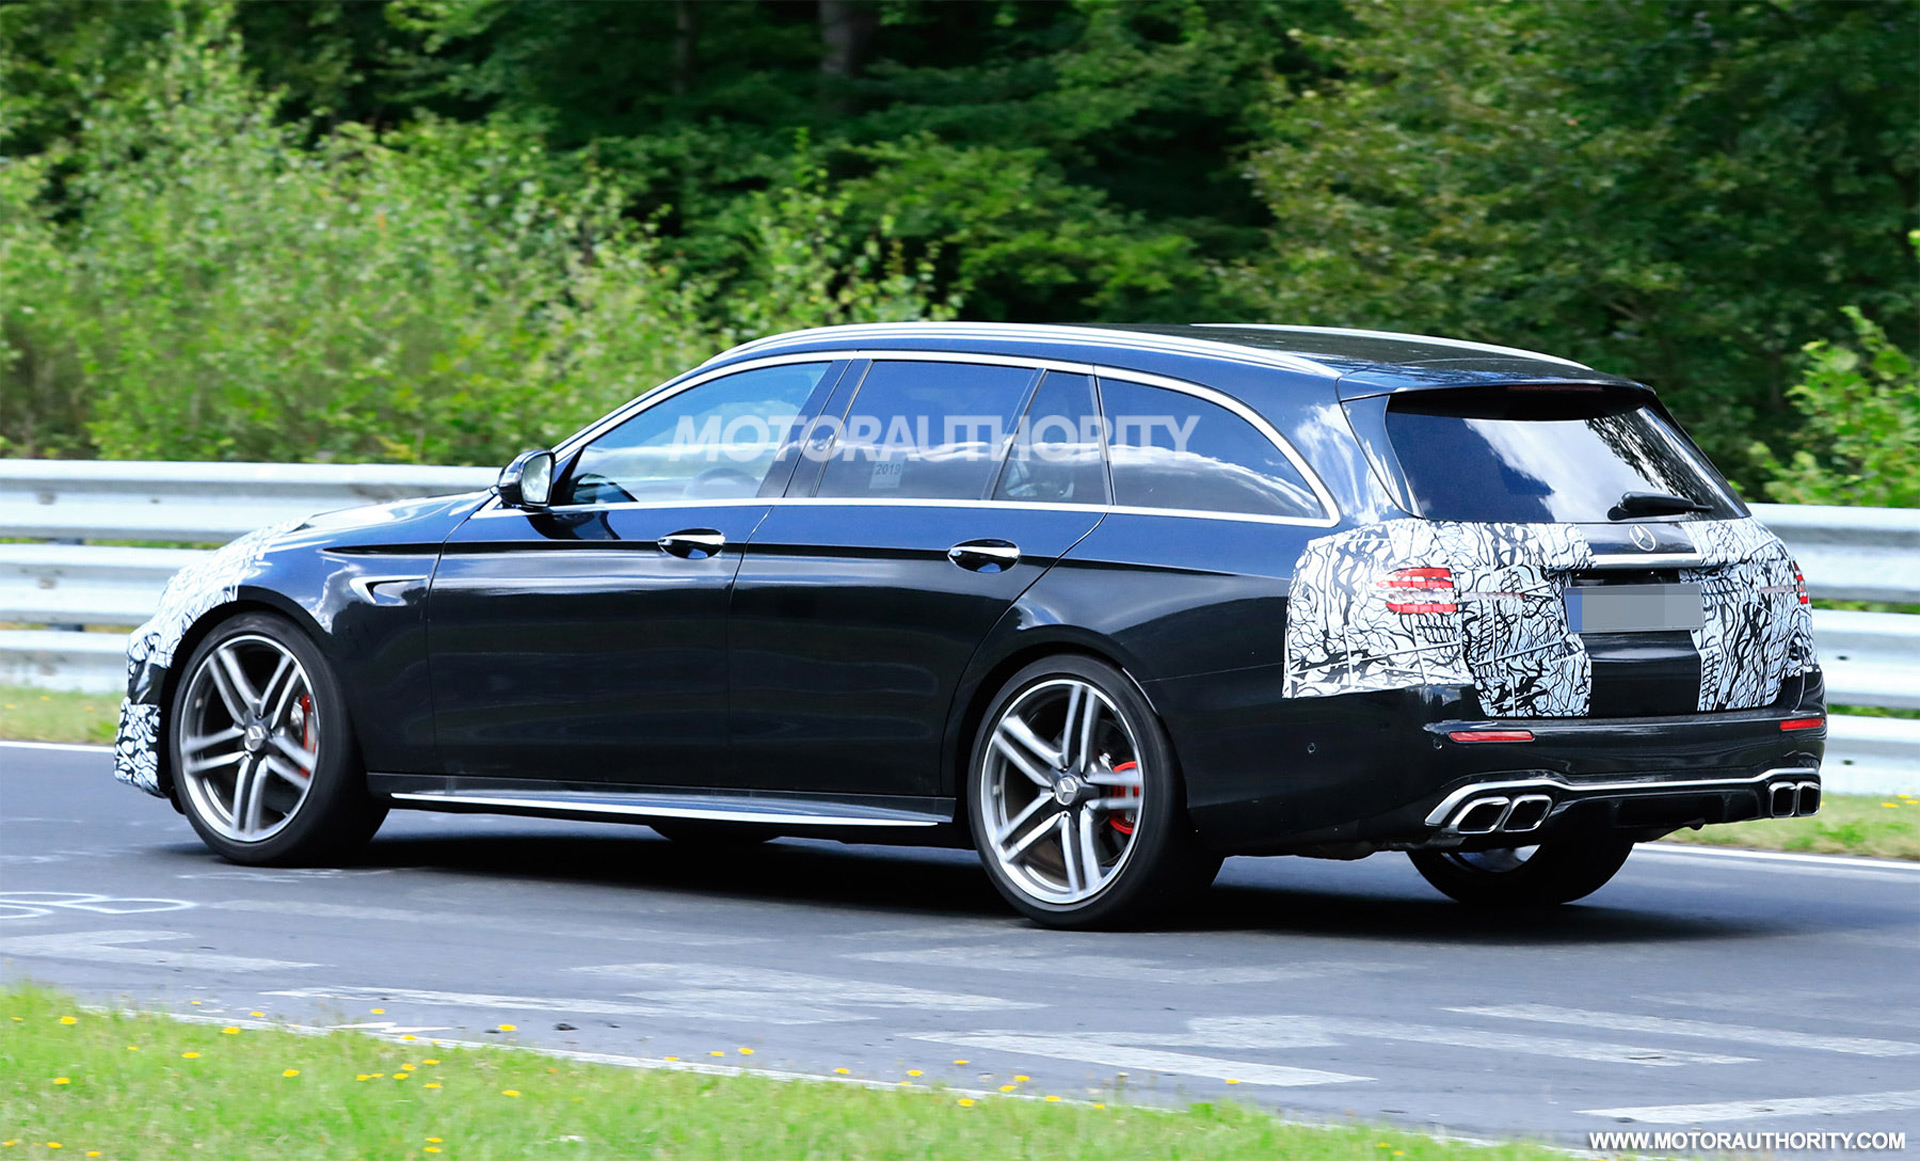 2020 - [Mercedes-Benz] Classe E restylée  - Page 2 2021-mercedes-amg-e63-wagon-facelift-spy-shots--photo-credit-s-baldauf-sb-medien_100711684_h